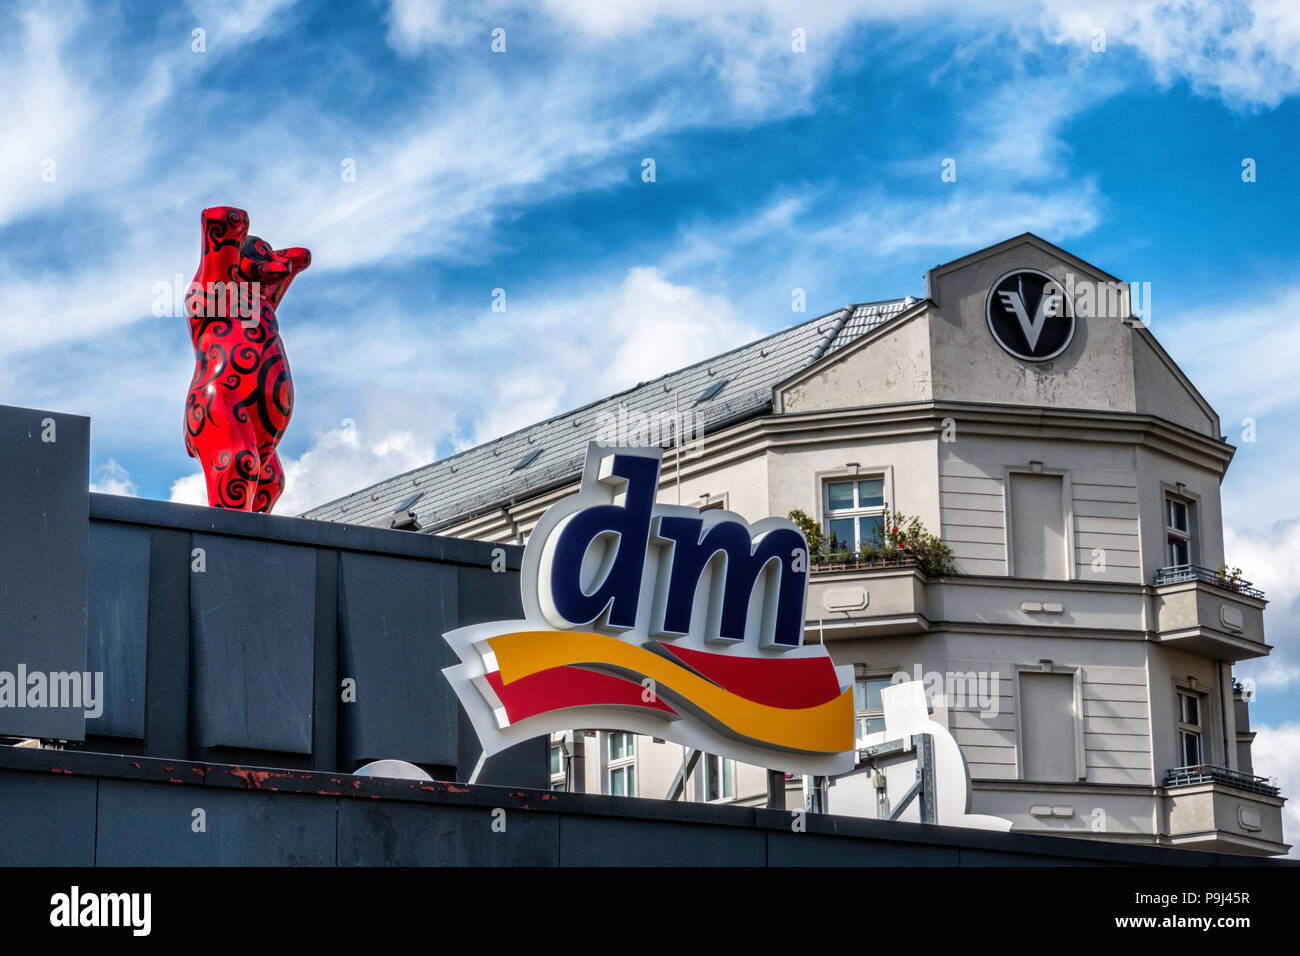 Berlin, Friedrichshain, Red Berlin Buddy bear, DM drugstore logo and apartment buildings - Stock Image